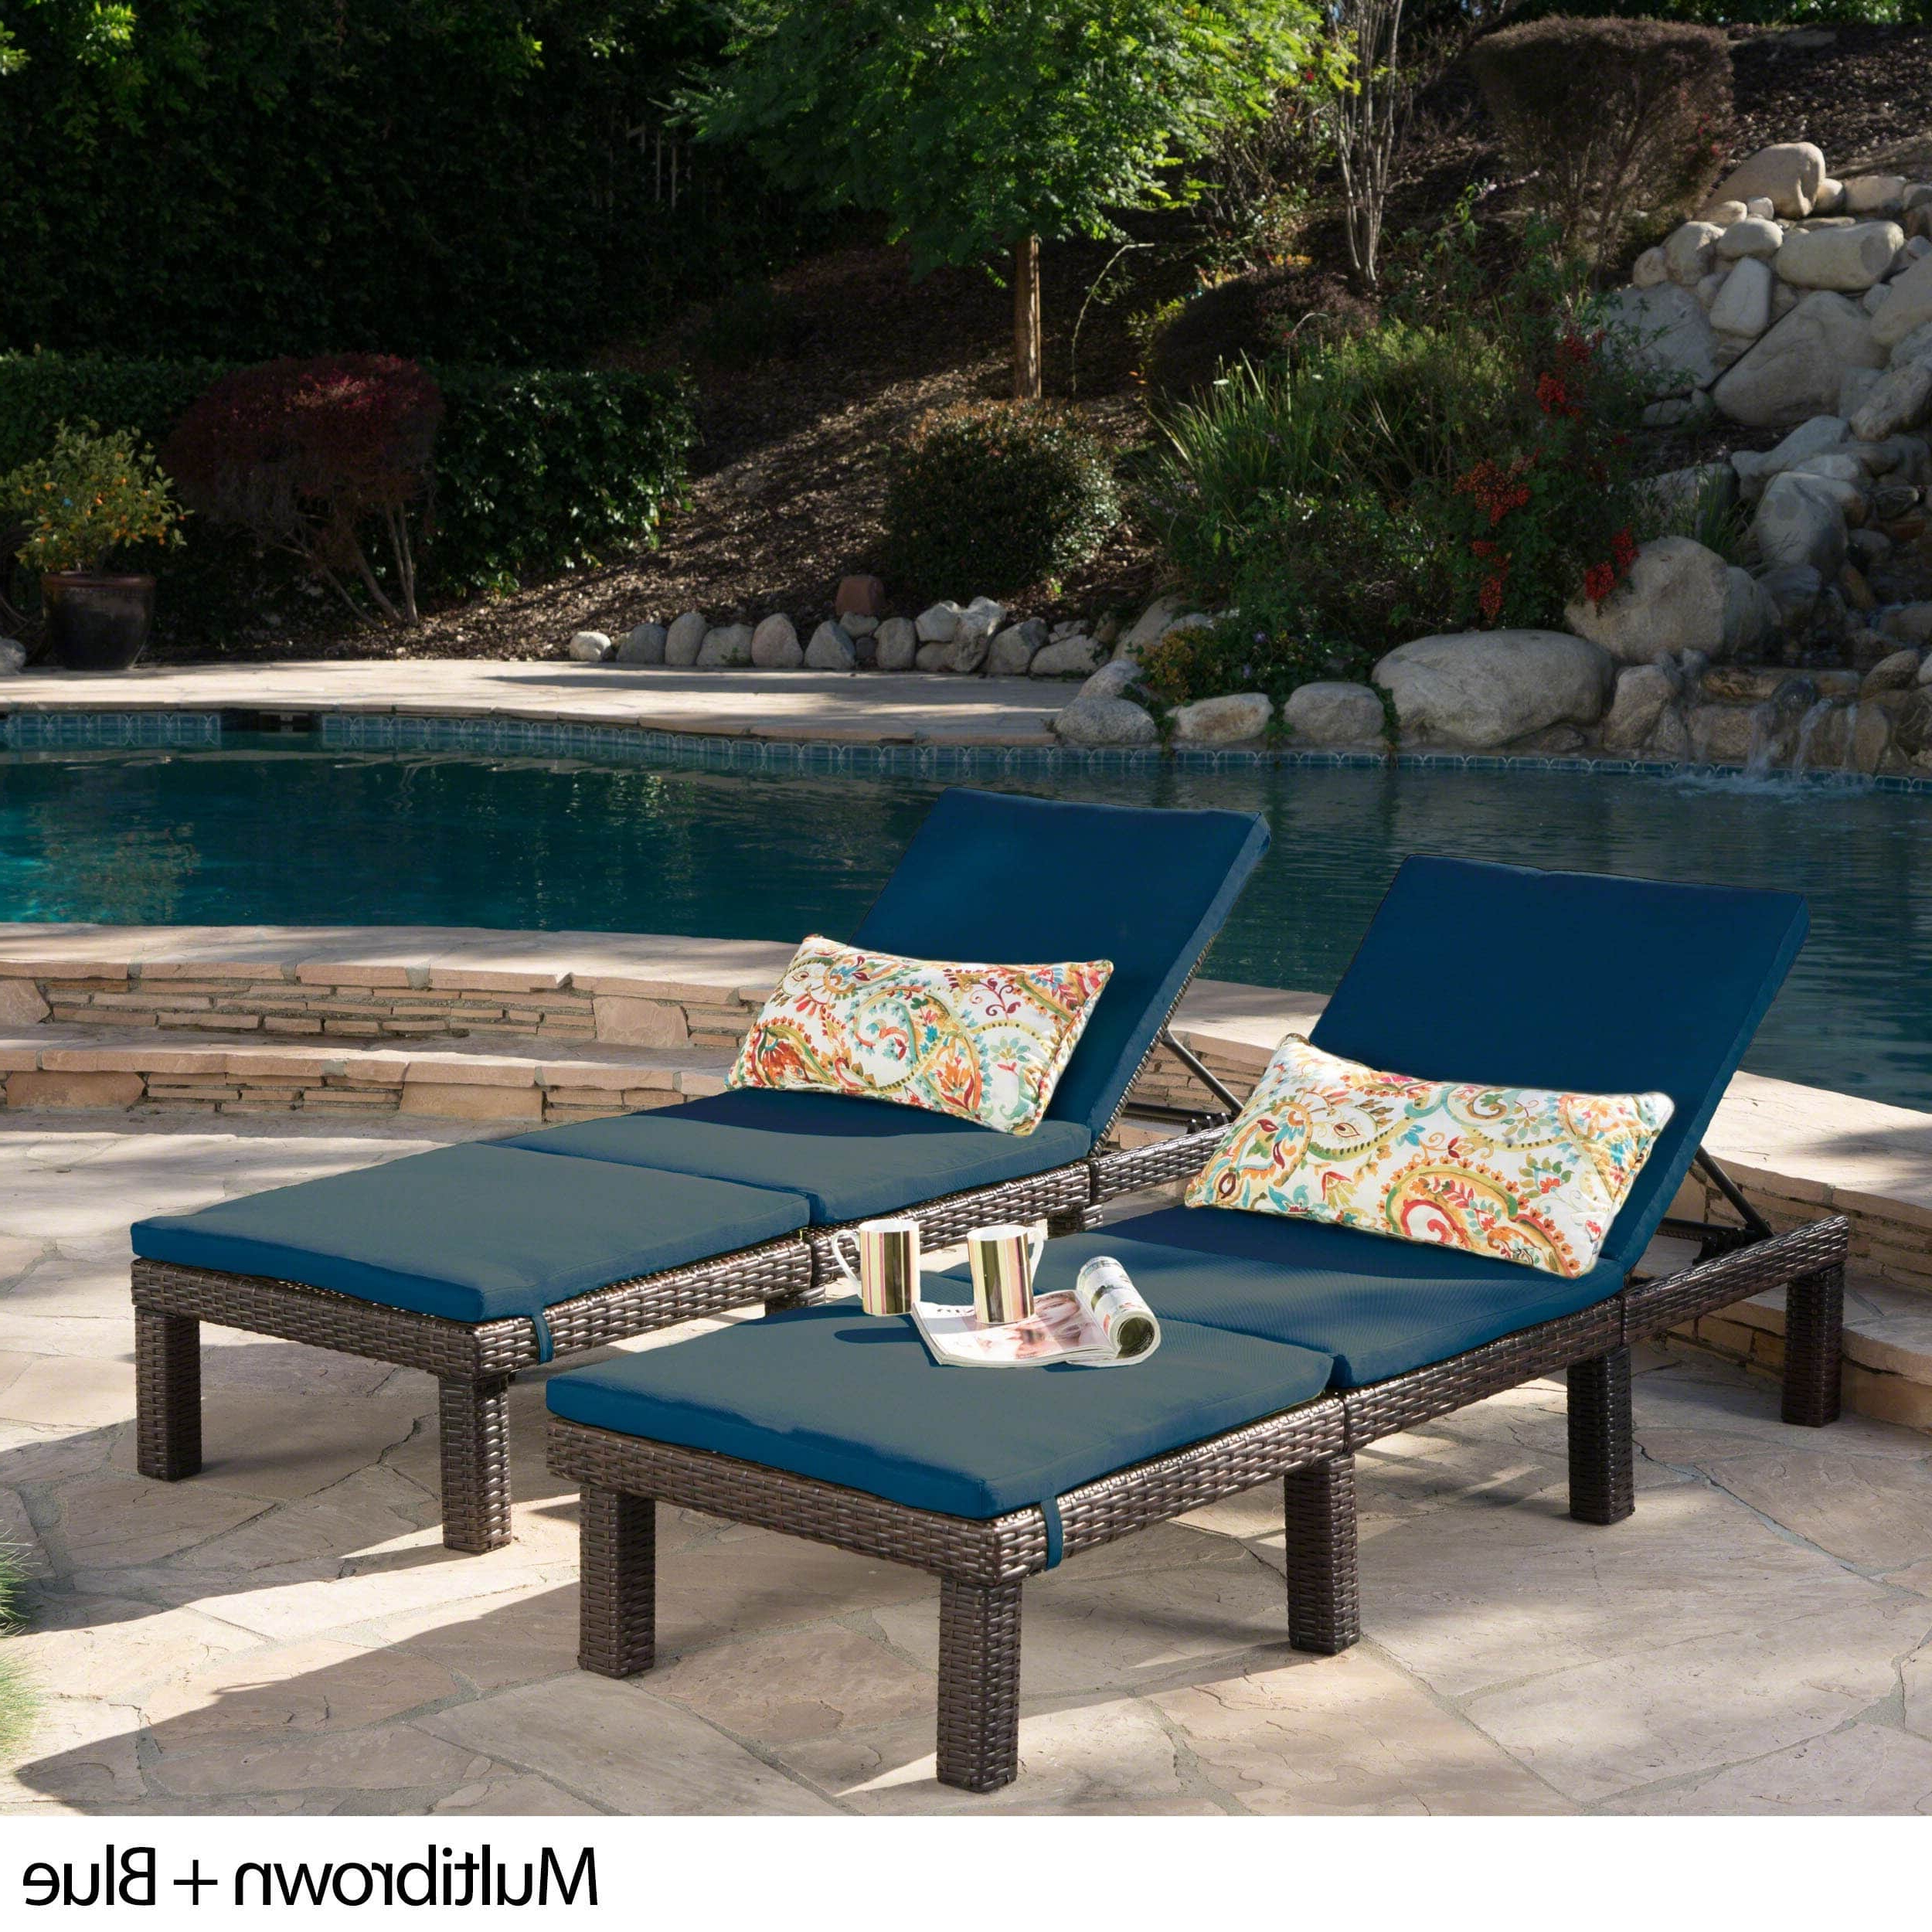 Jamaica Outdoor Chaise Lounges Regarding 2019 Jamaica Outdoor Chaise Lounge With Cushion (Set Of 2) (View 10 of 25)